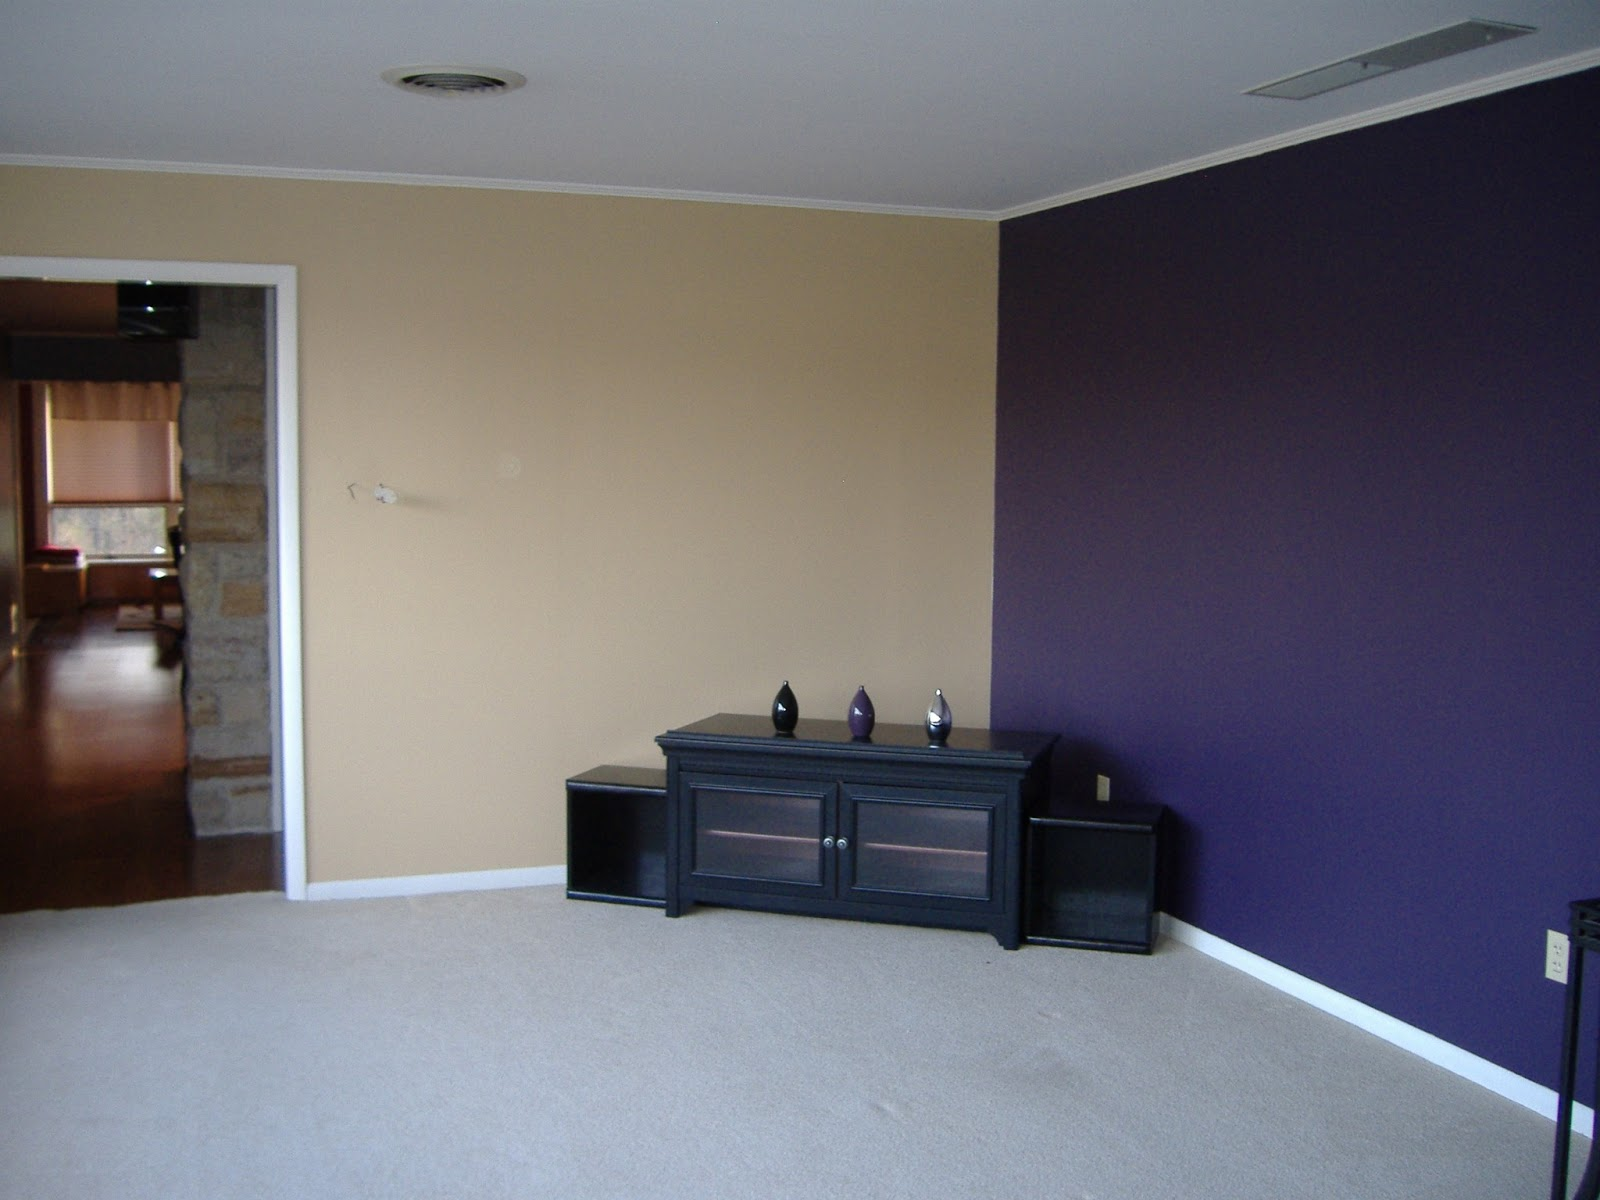 While I Loved The Eggplant Accent Wall, I HATED The Beige Color I Painted  The Other Three Walls. I Used The Same Color That We Had In The Hallway, ...